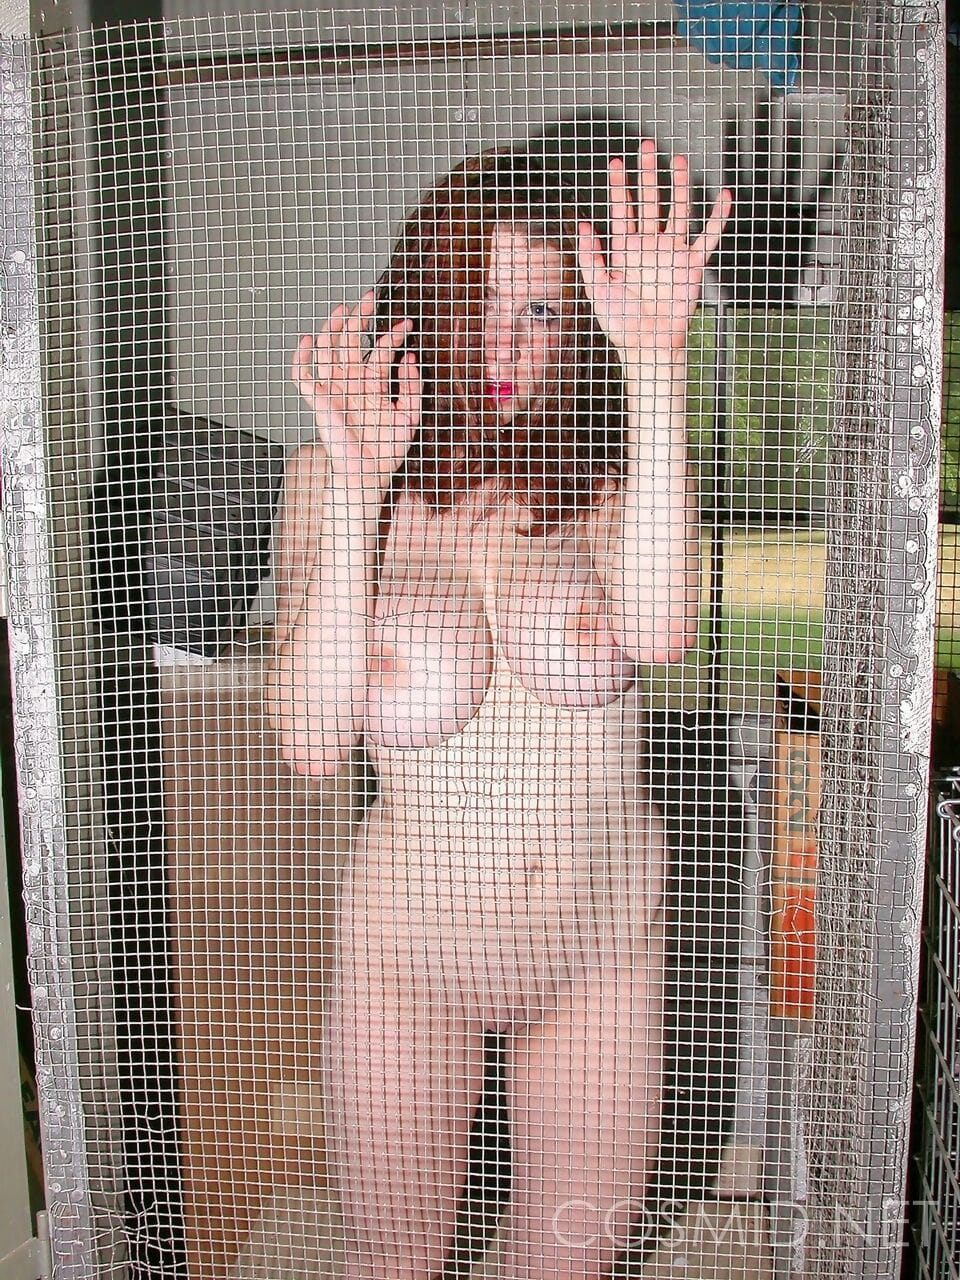 Redhead amateur removes see thru clothes for nude poses afore a window